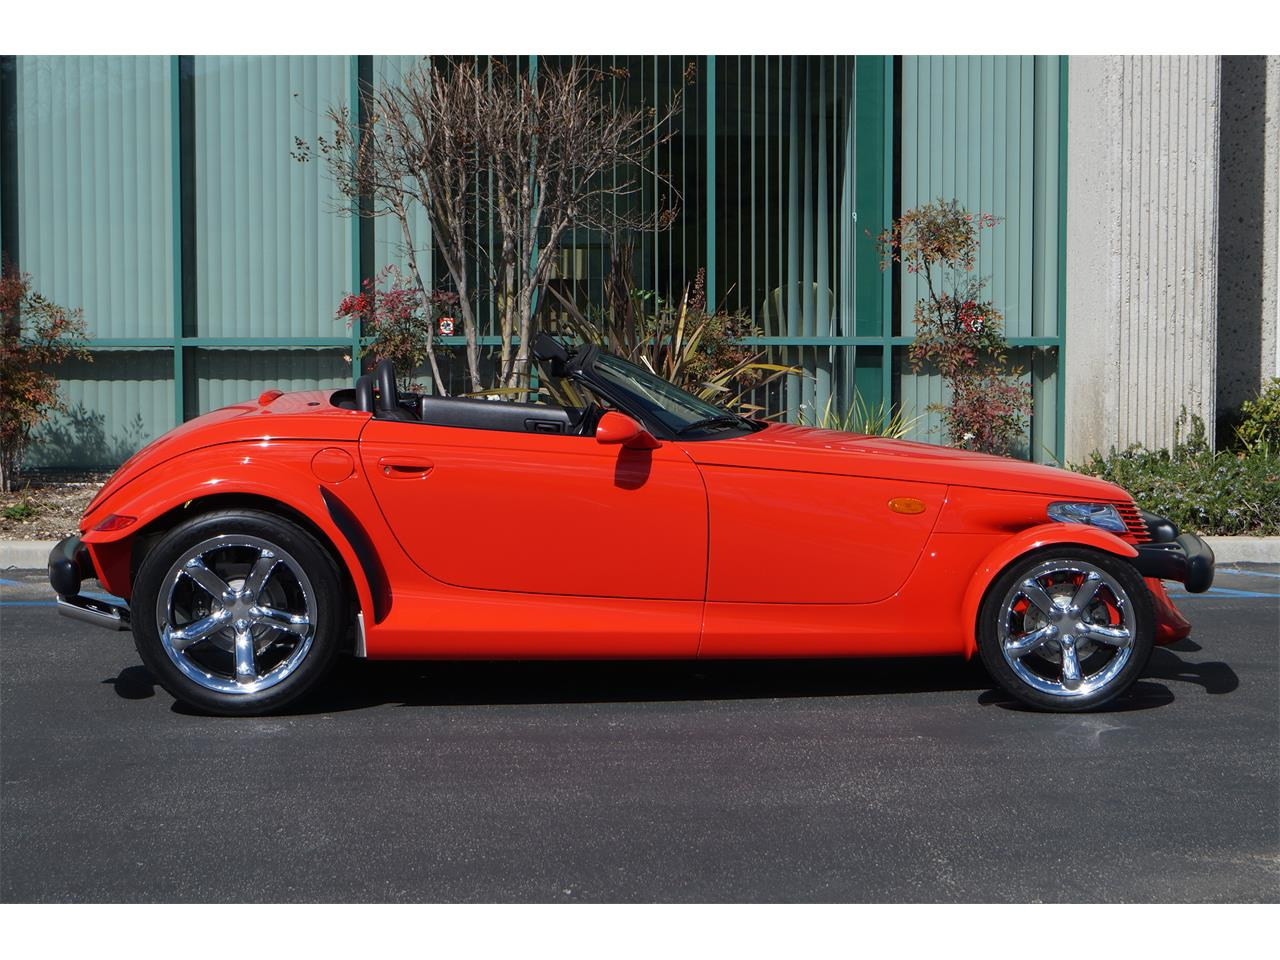 2000 Plymouth Prowler for sale in Thousand Oaks, CA – photo 7